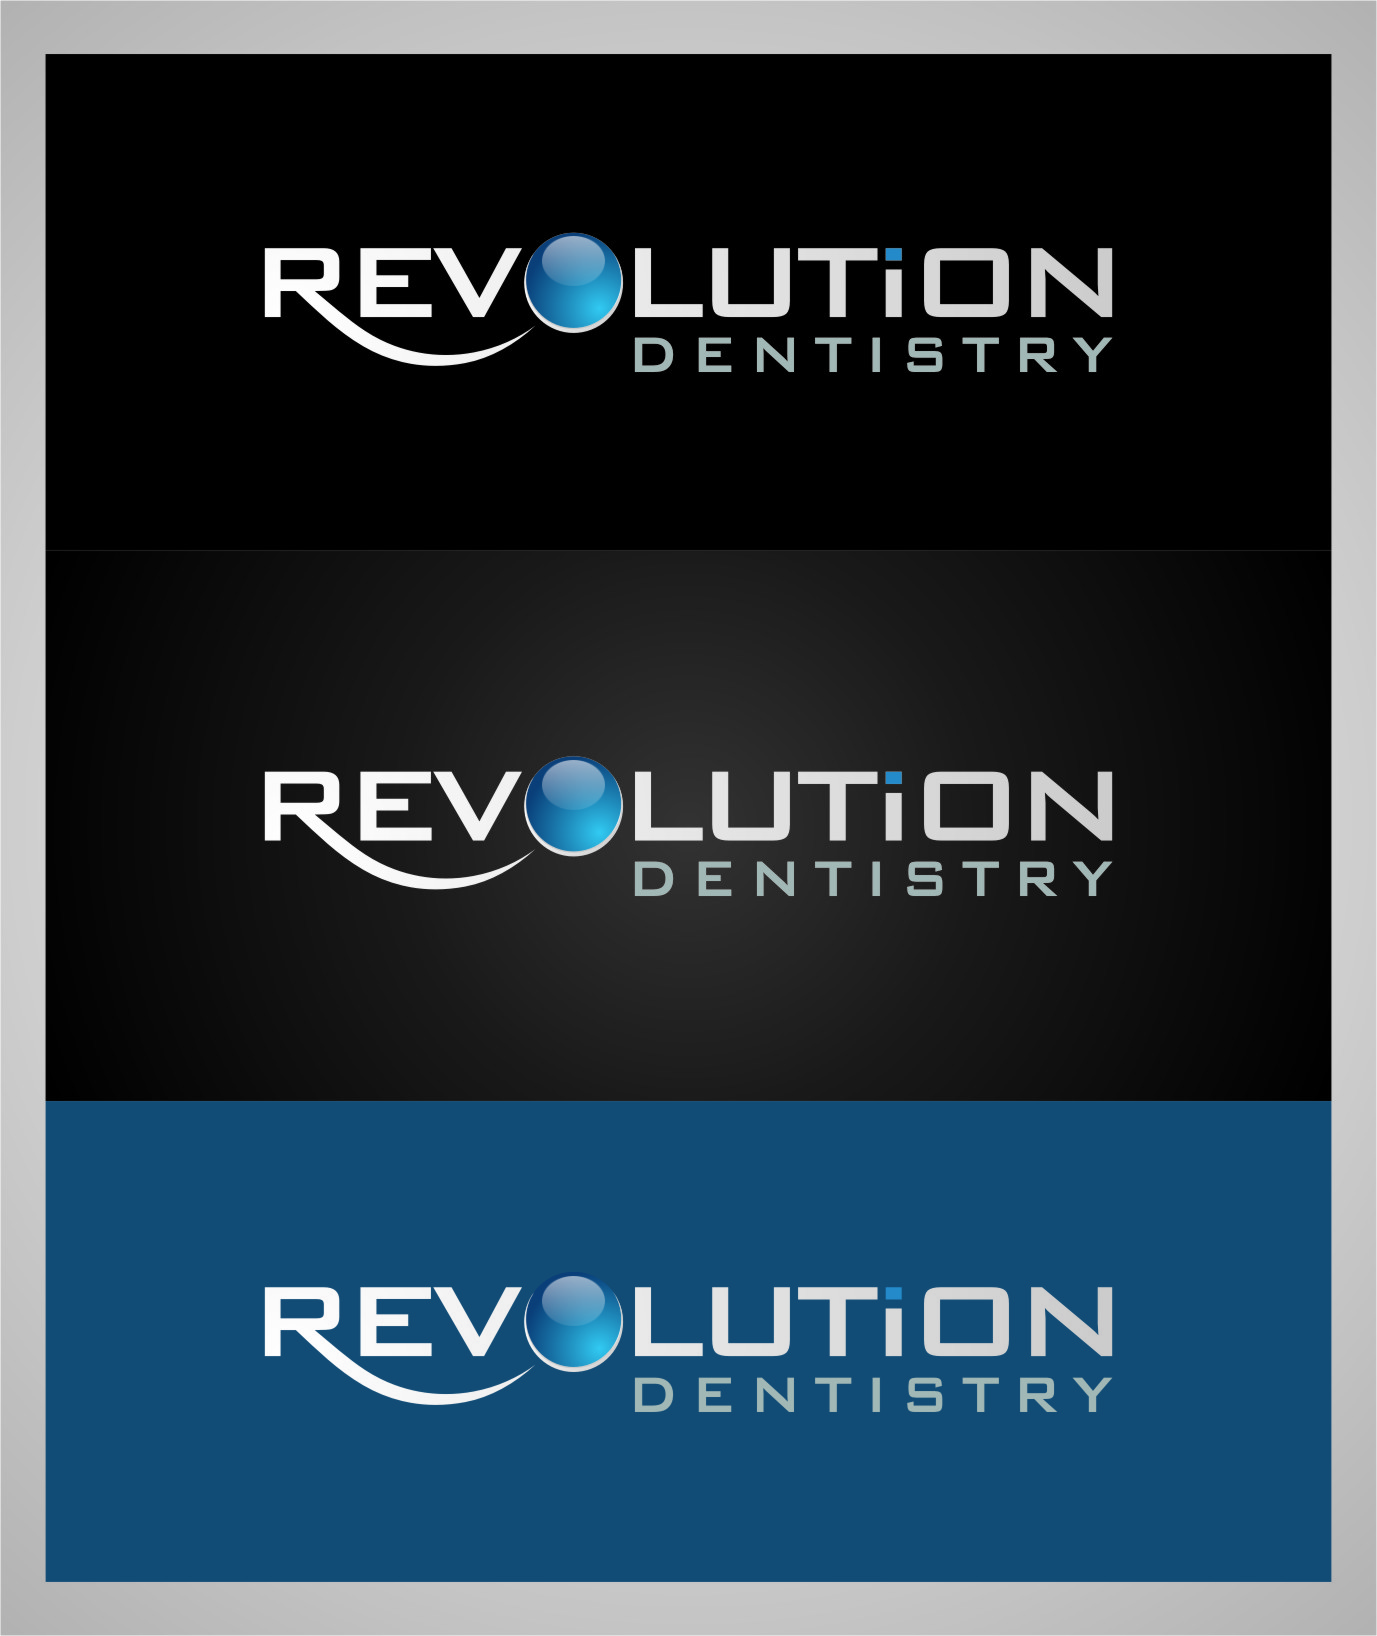 Logo Design by RoSyid Rono-Rene On Java - Entry No. 141 in the Logo Design Contest Artistic Logo Design for Revolution Dentistry.